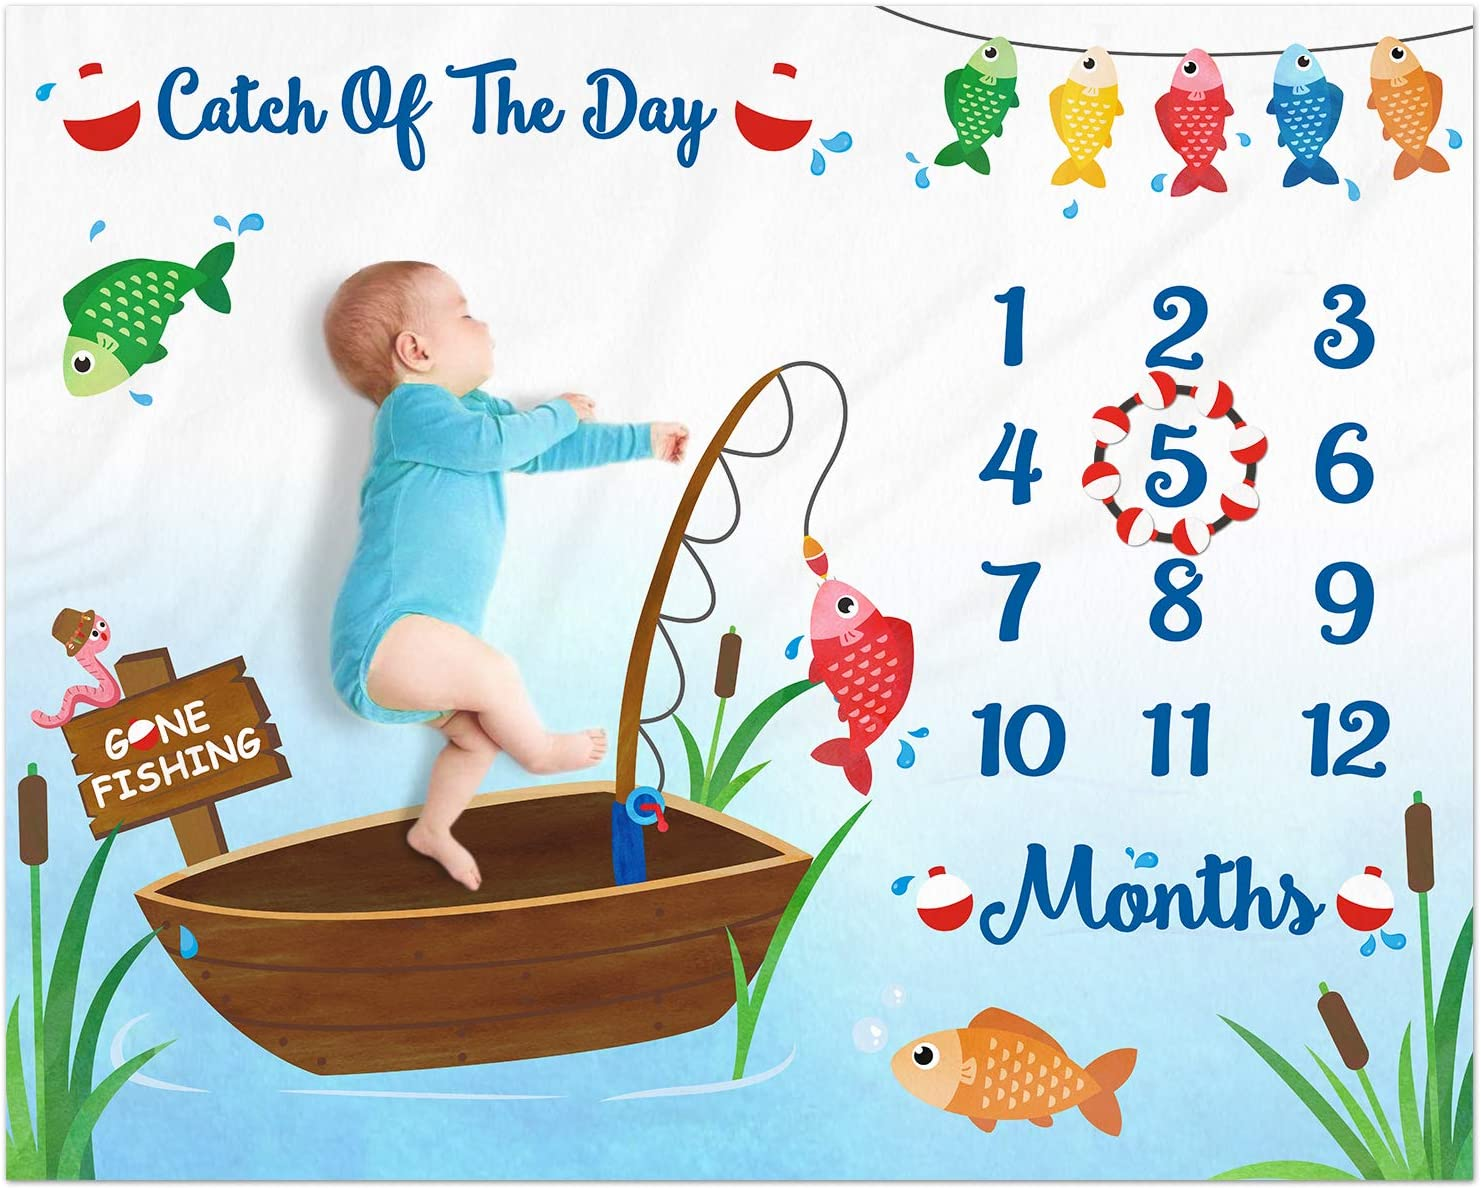 Amazon Com Eunikroko Gone Fishing Baby Monthly Milestone Blanket Little Fisherman Bobber Photo Prop Blanket The Big One Ideas For Newborn Boy And Girl Nursery Decor 40 X 50 Home Kitchen